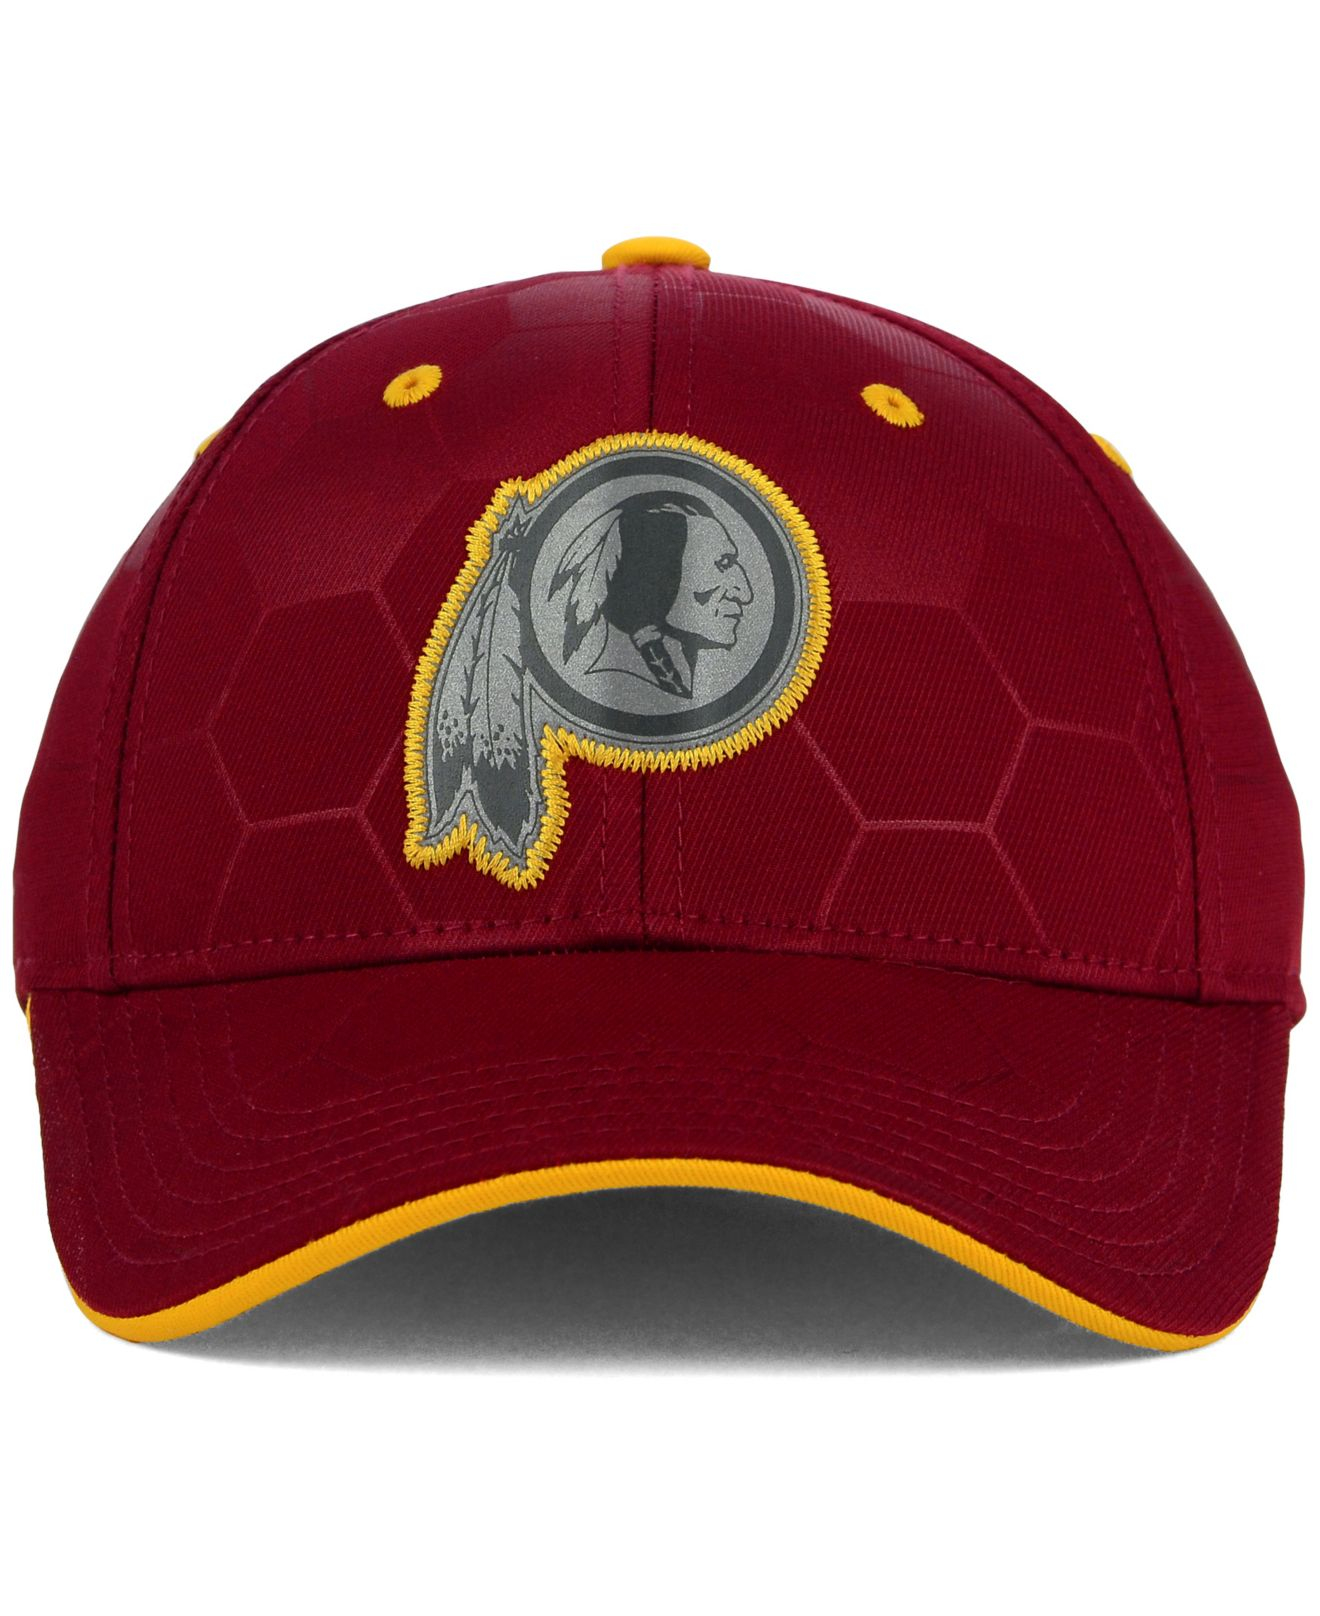 170aac43b9c Lyst - Outerstuff Kids  Washington Redskins Reflective Stretch-fit ...